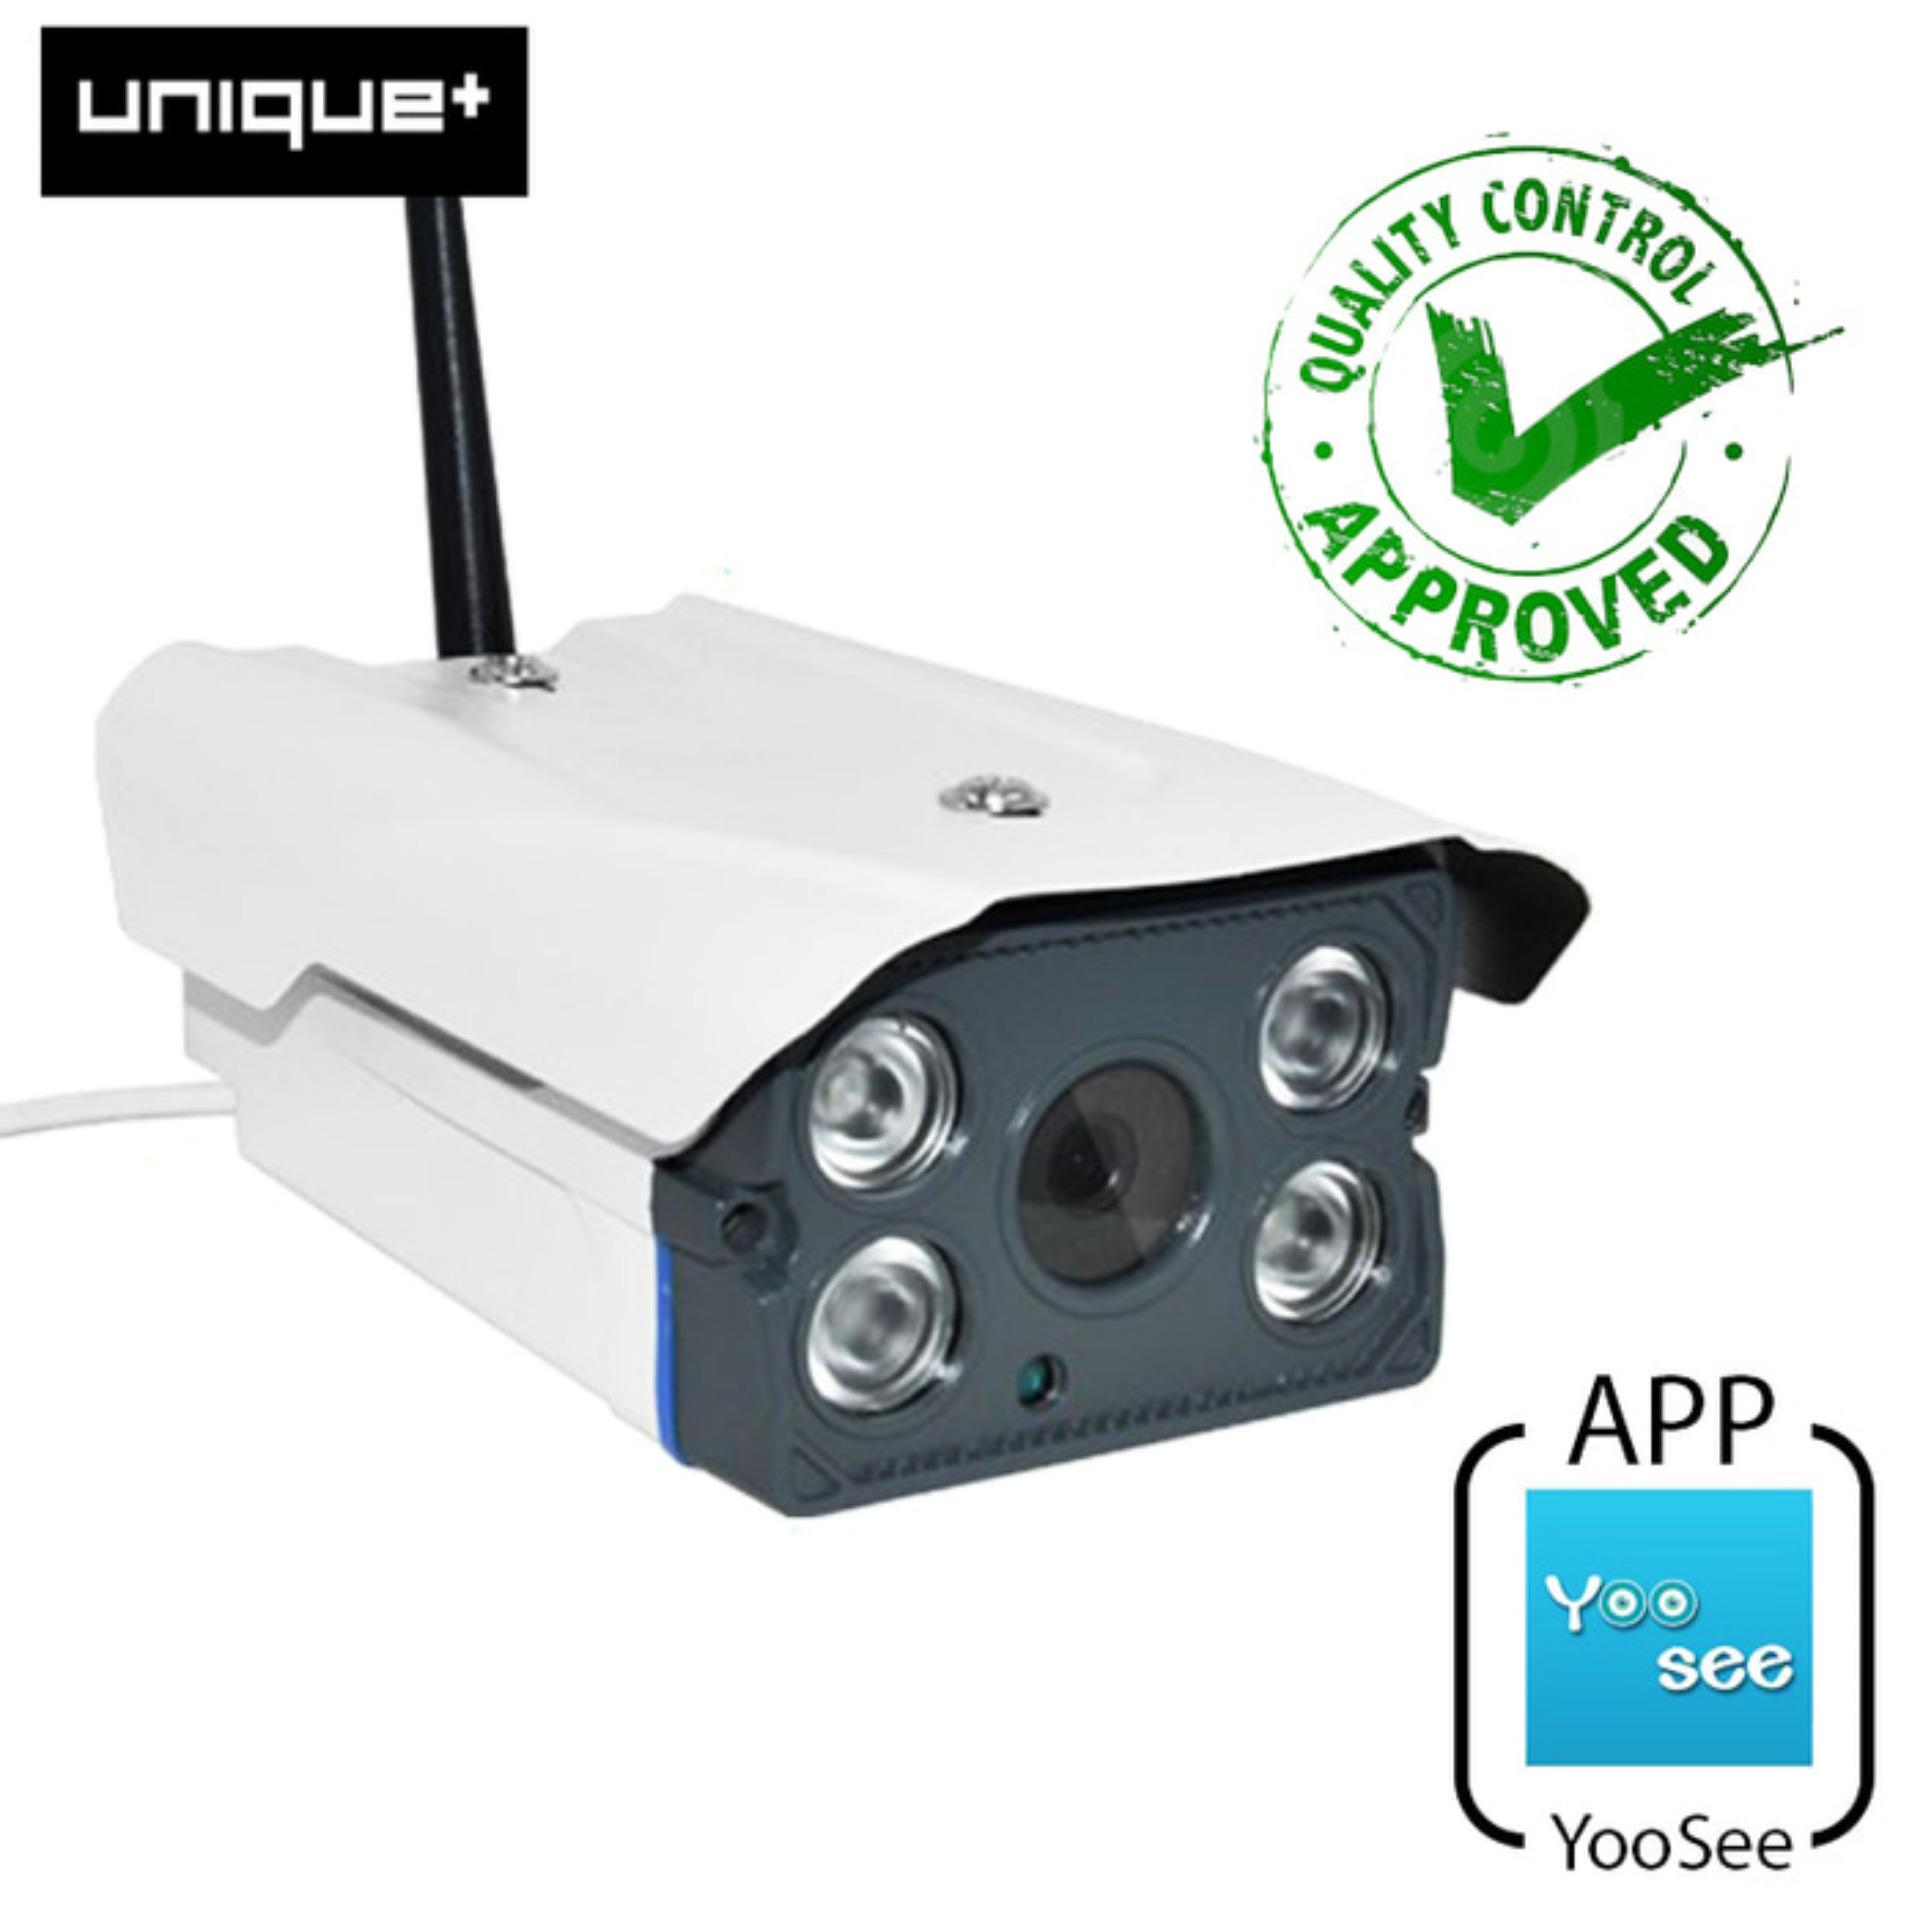 Toko Unique Ip Cam Cctv Outdoor Anti Air V380 Hd 960P Outdoor Waterproof Wifi Cctv Camera Smart Wireless Ip Camera White Unique Indonesia